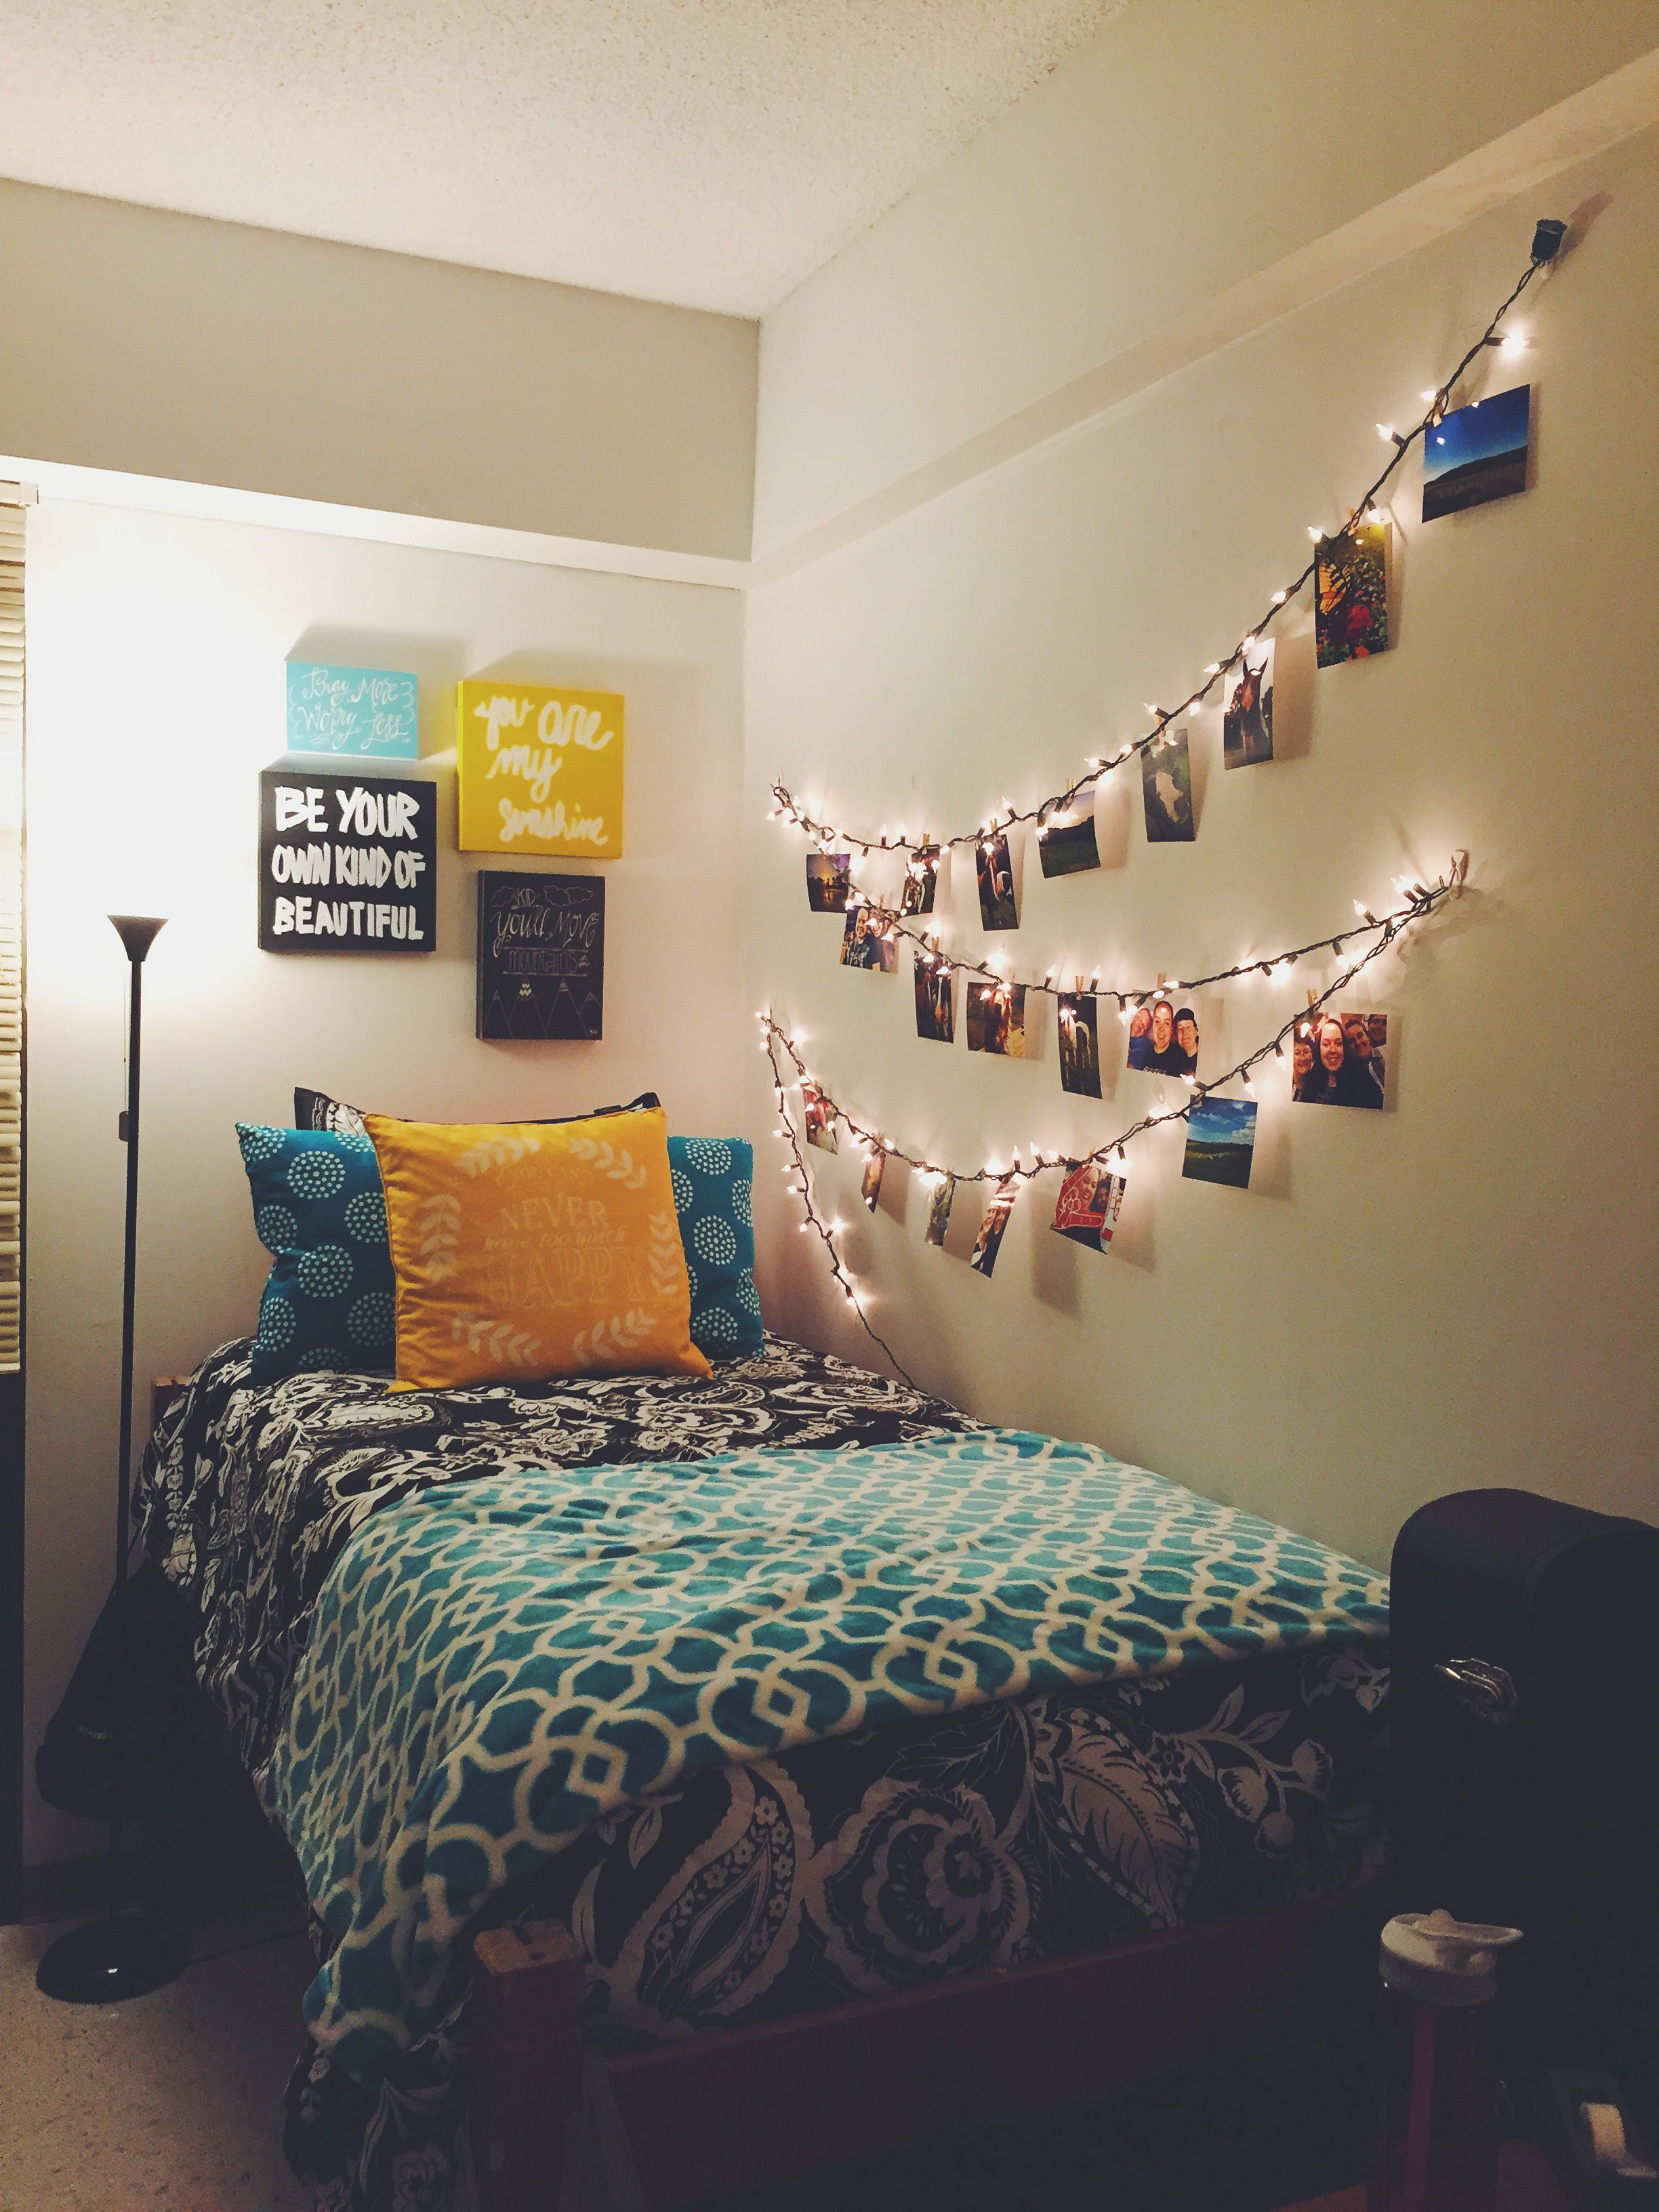 Dorm Room Styles: My Dorm In Capstone At The University Of South Carolina